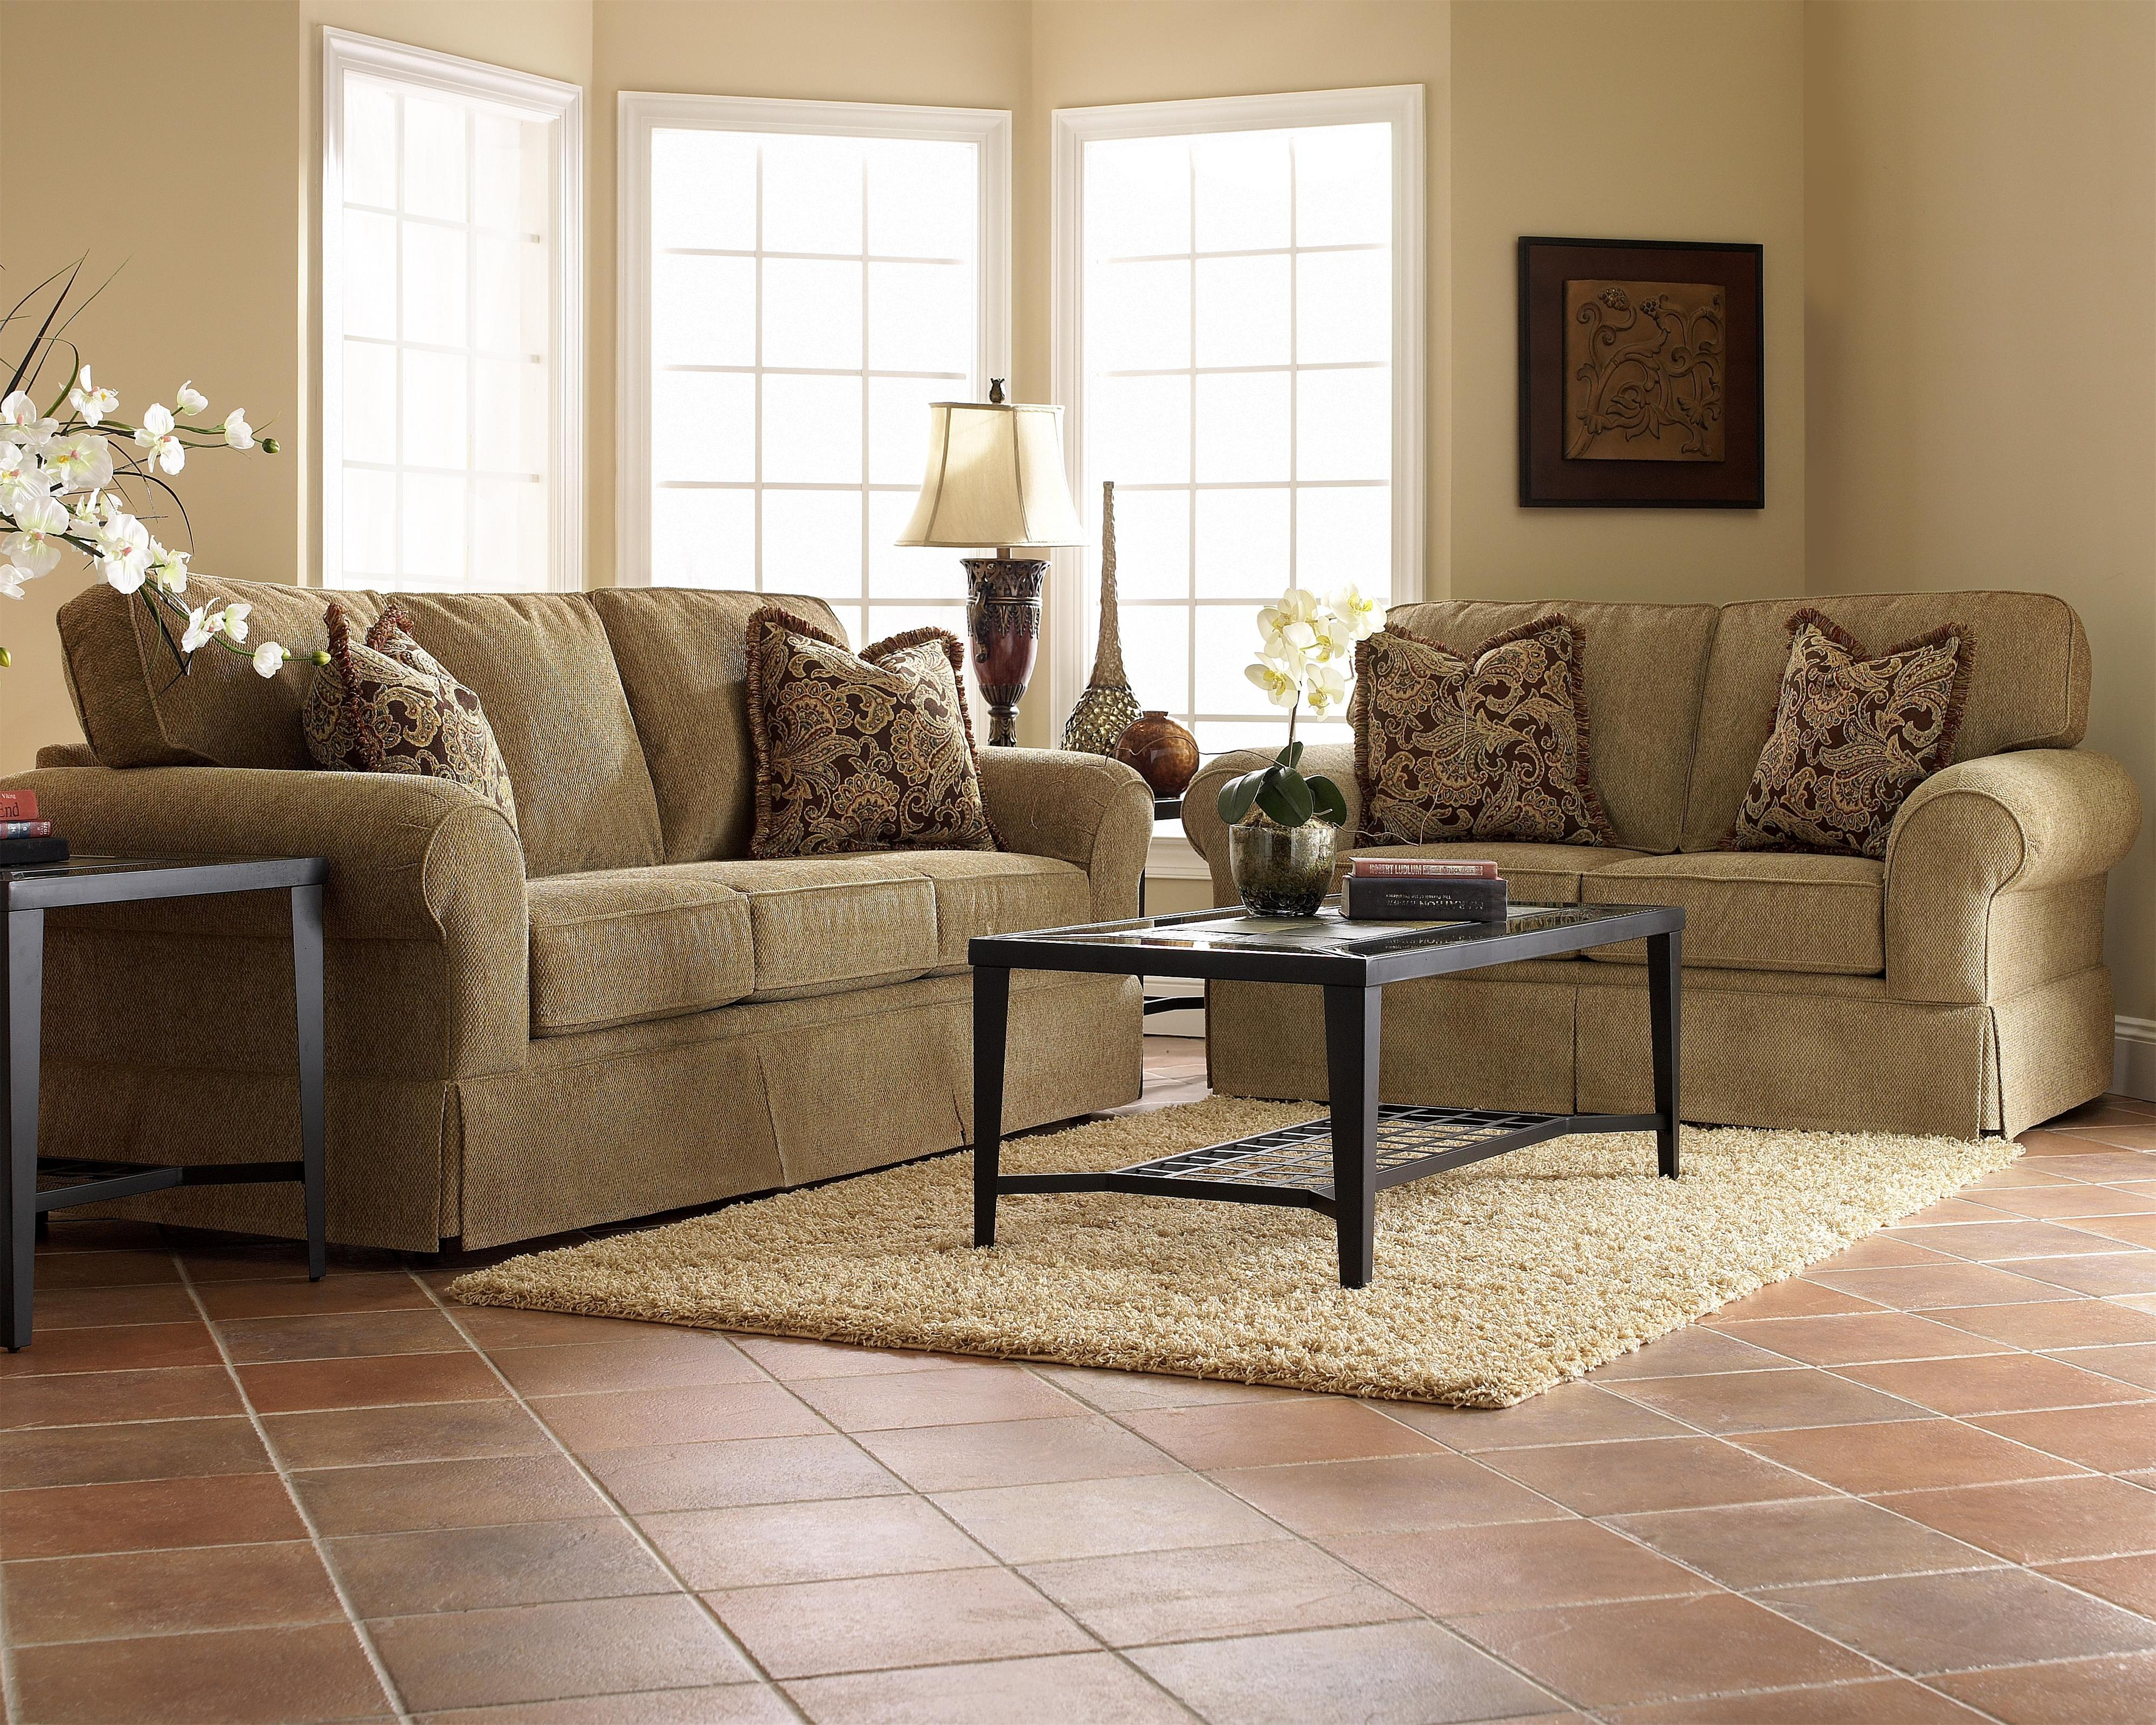 Woodwin Stationary Living Room Group by Klaussner at Northeast Factory Direct